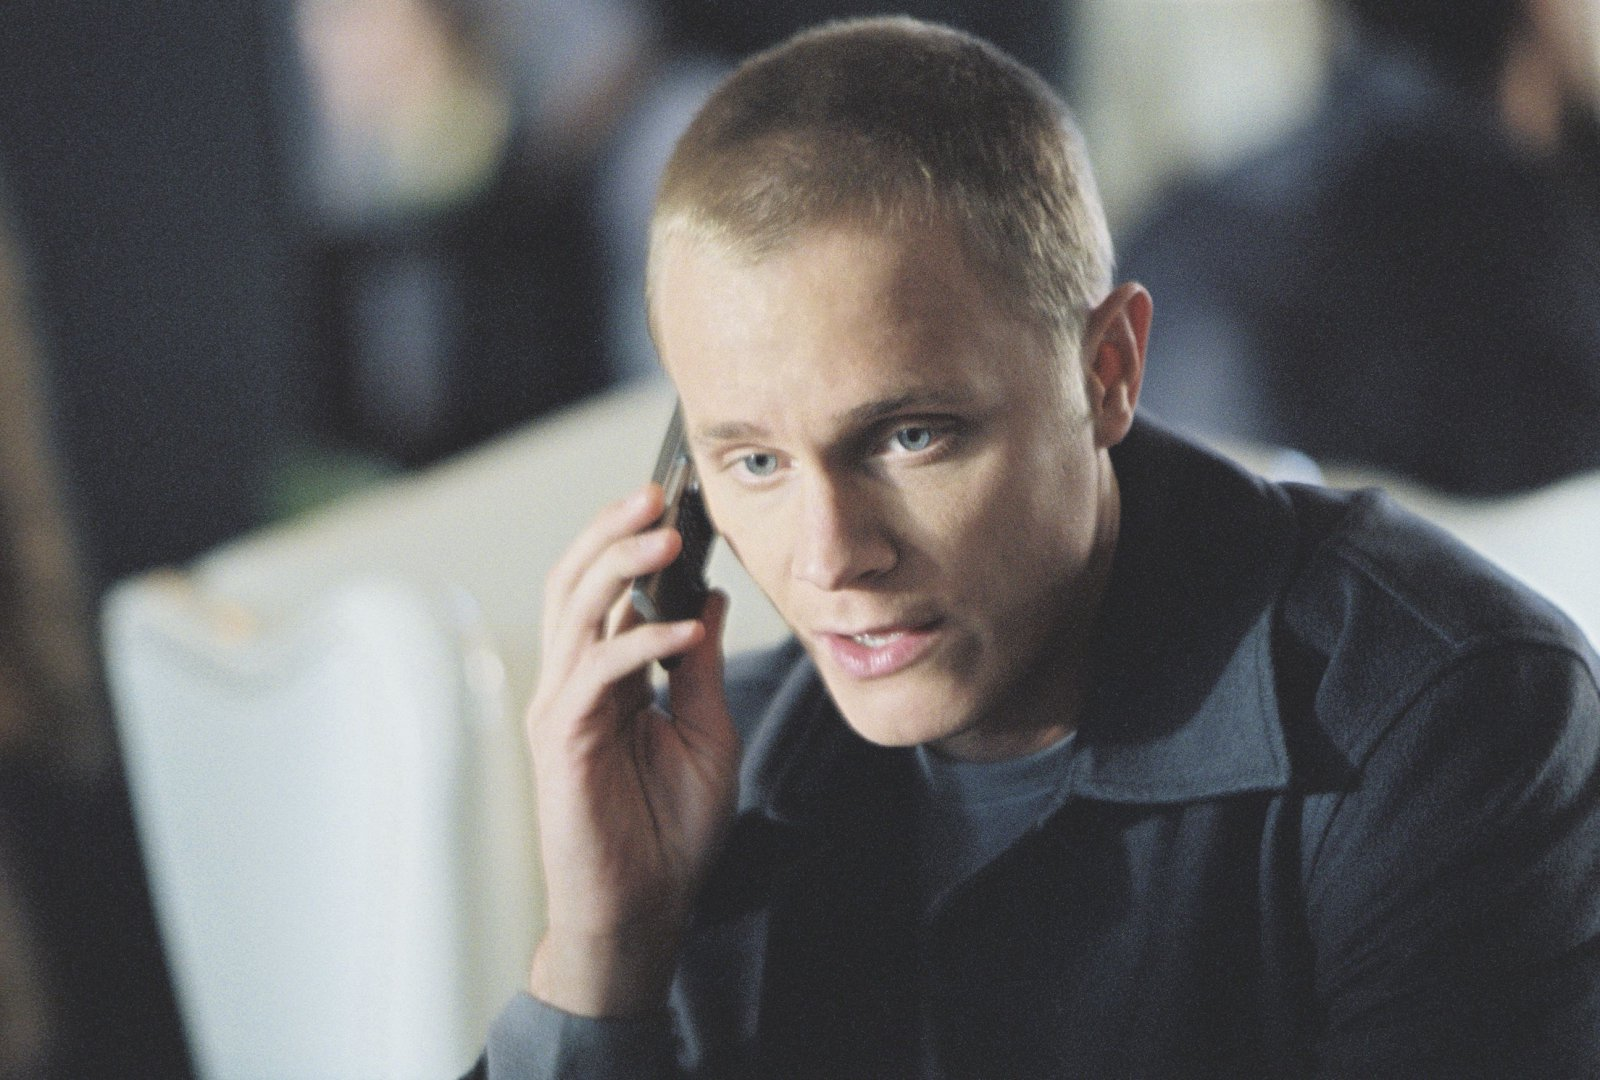 david anders on cellphone sark.jpg